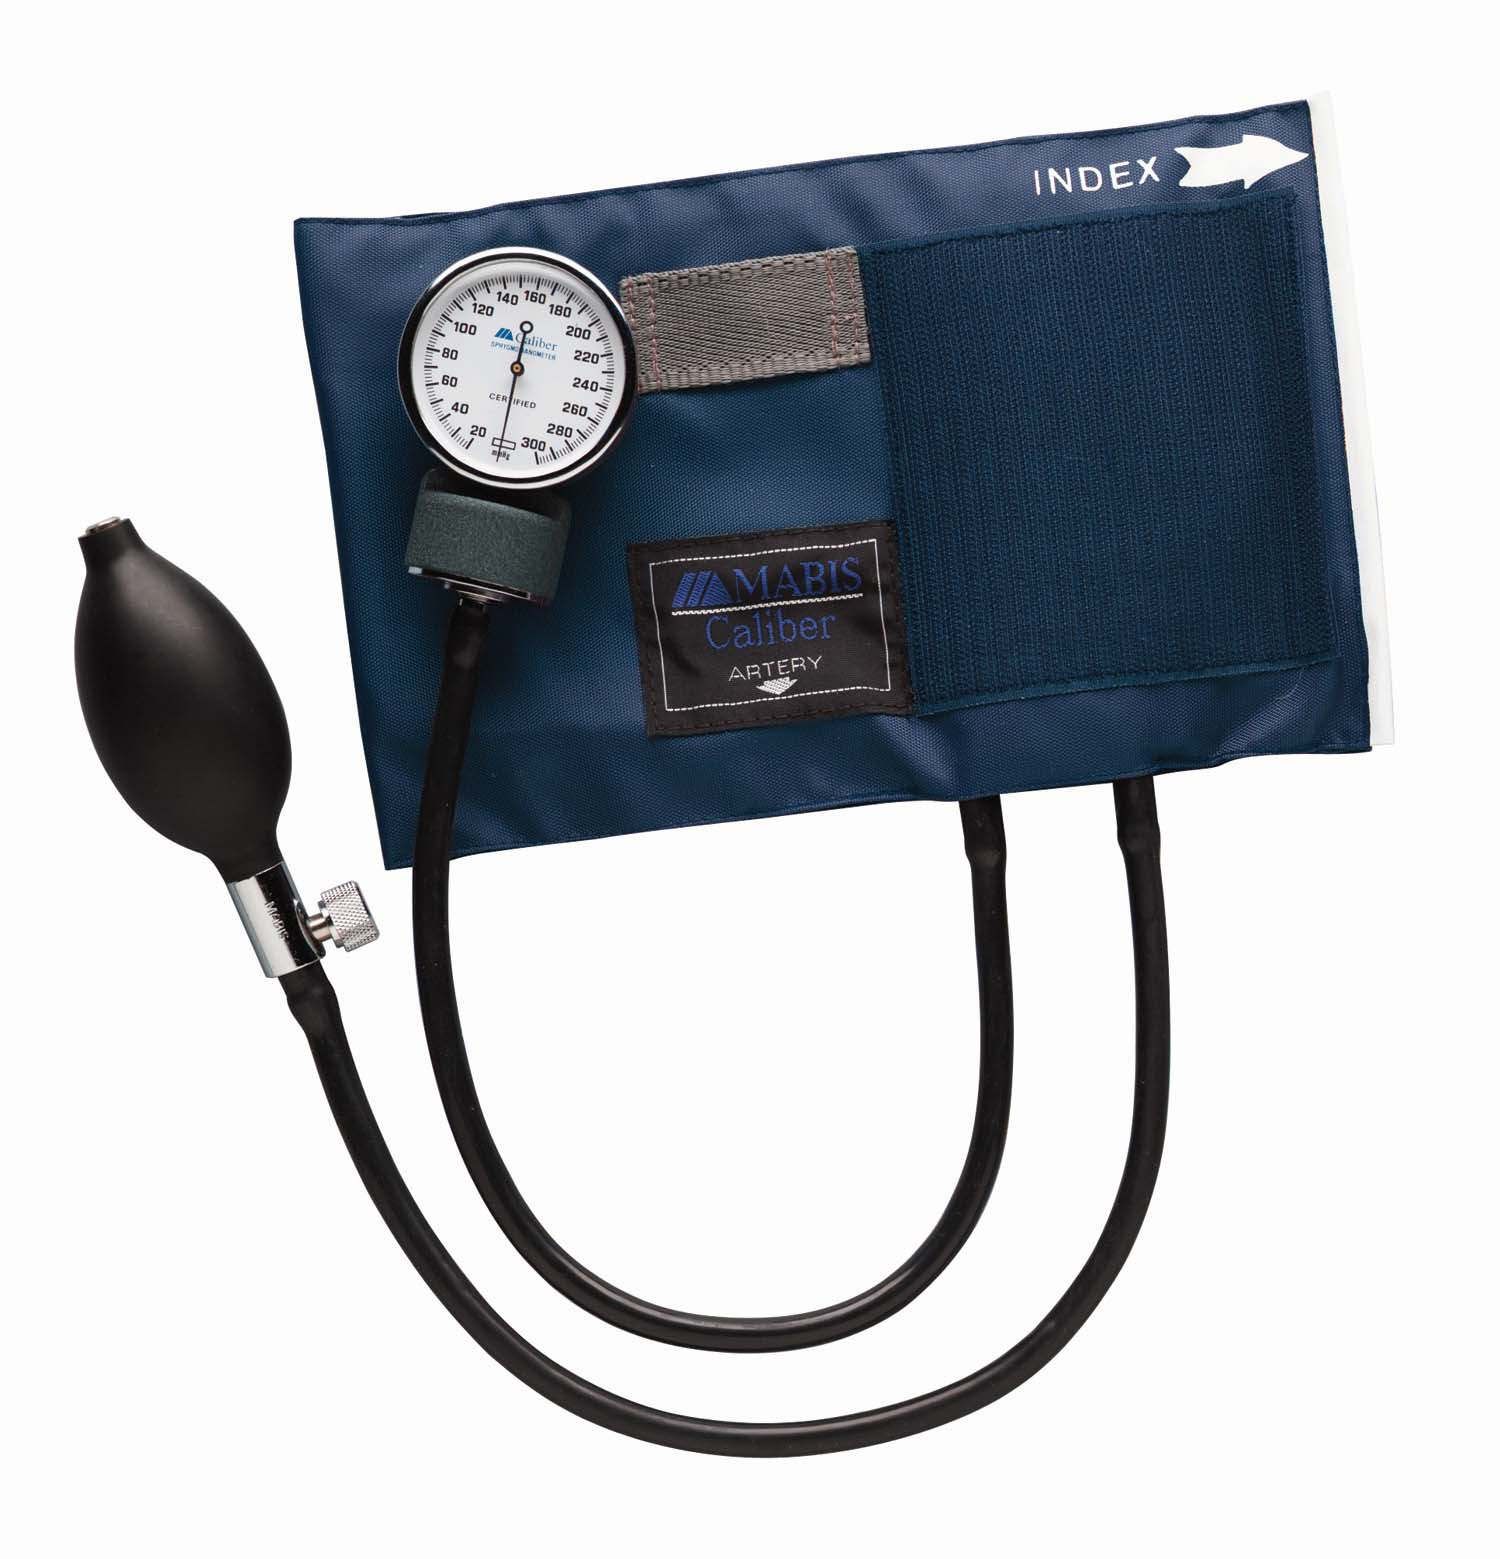 caliber-aneroid-sphygmomanometer-blue-nylon-cuff-large-adult-01-130-016-lr.jpg